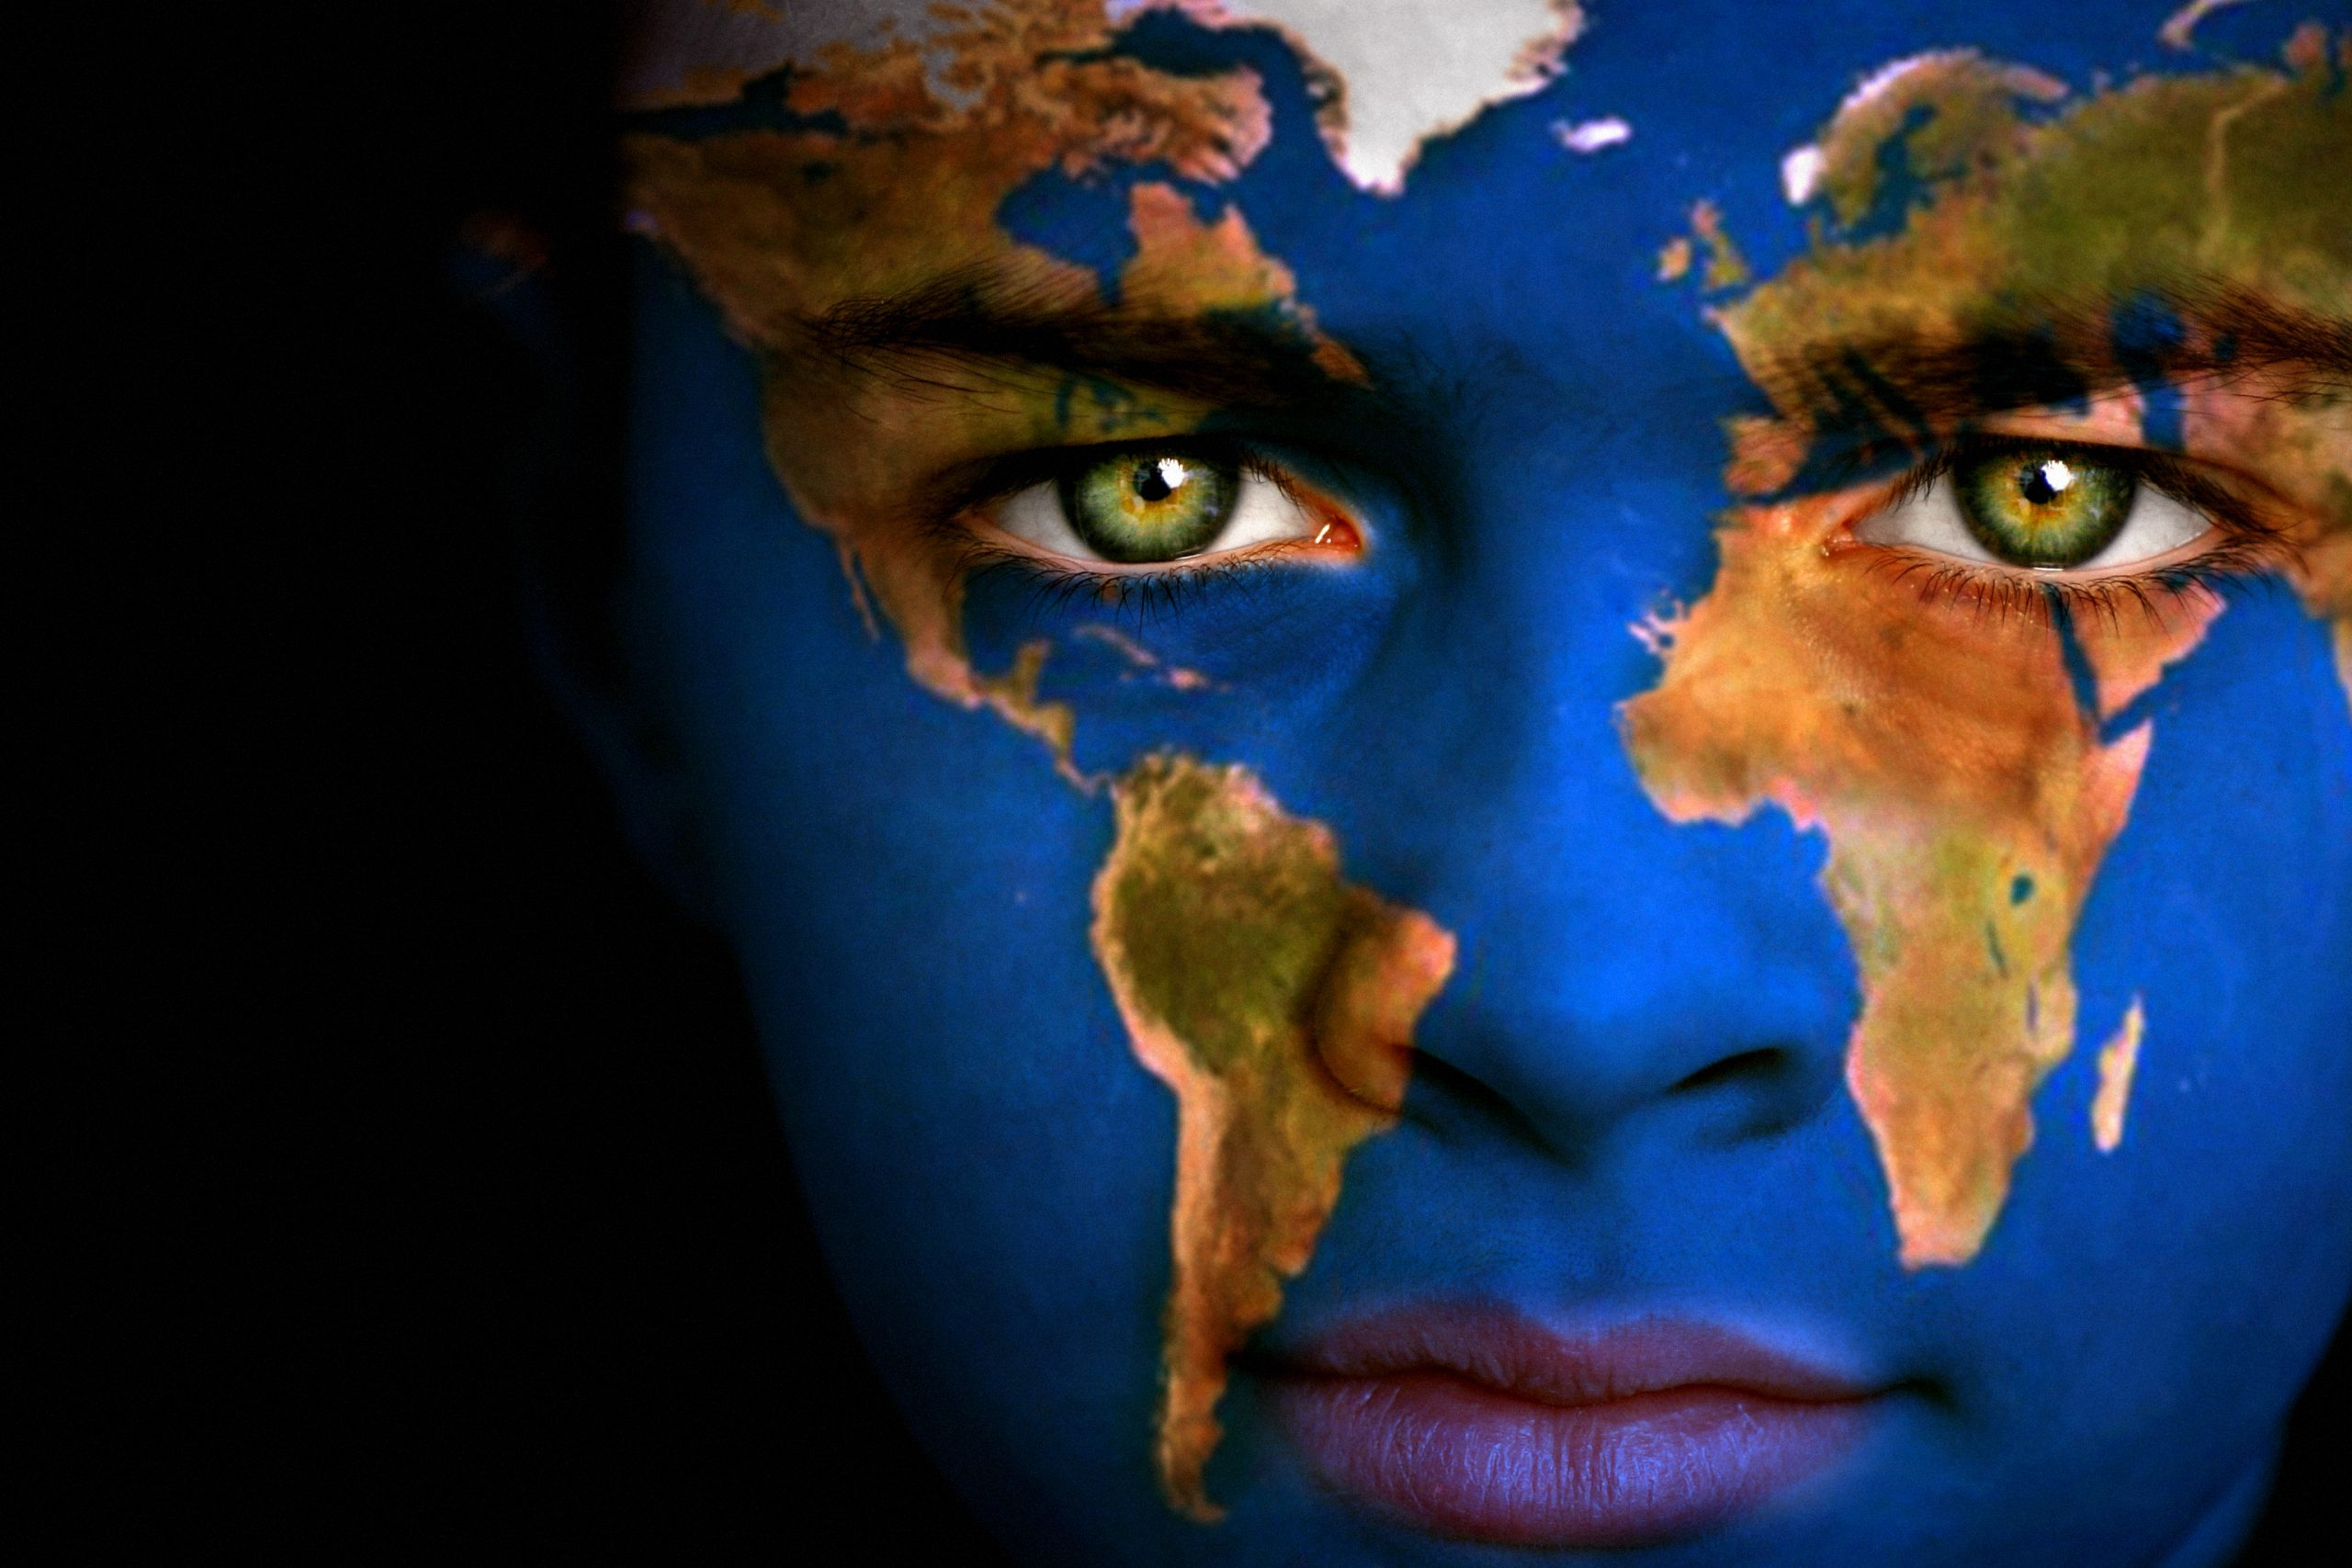 Putting a human face on globalization